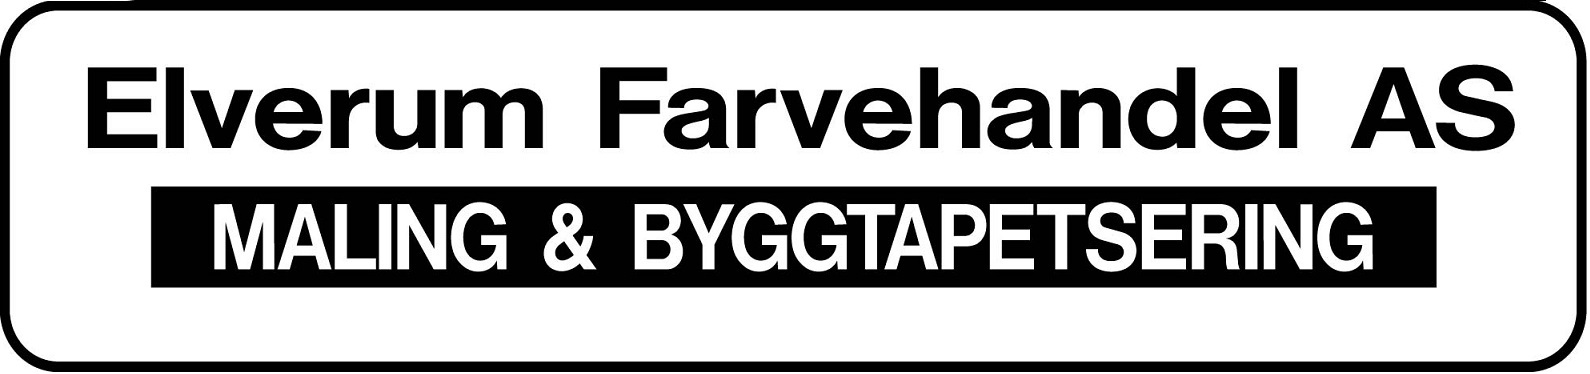 Elverum Farvehandel AS